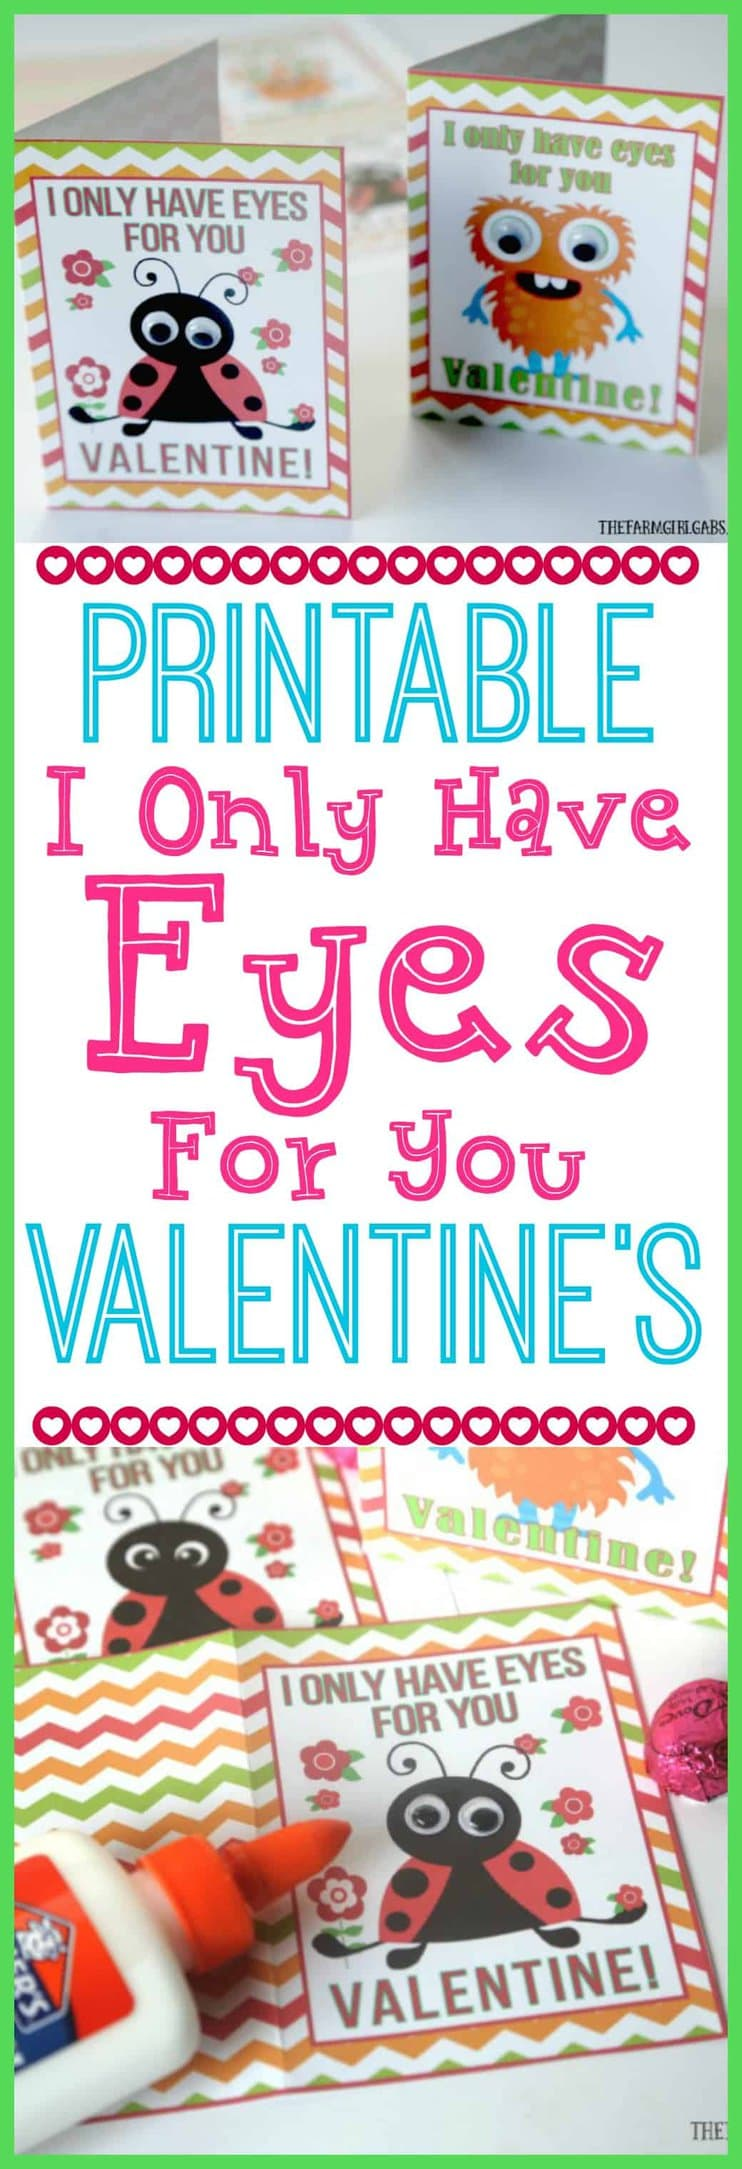 These Free printable I Only Have Eyes For You Valentine Cards are cuteness overload - an easy craft for kids and perfect to give to friends for Valentine's Day. #ValentinesDayCards #ValentinesDayCrafts #KidsCrafts #Printables #ValentinesDay